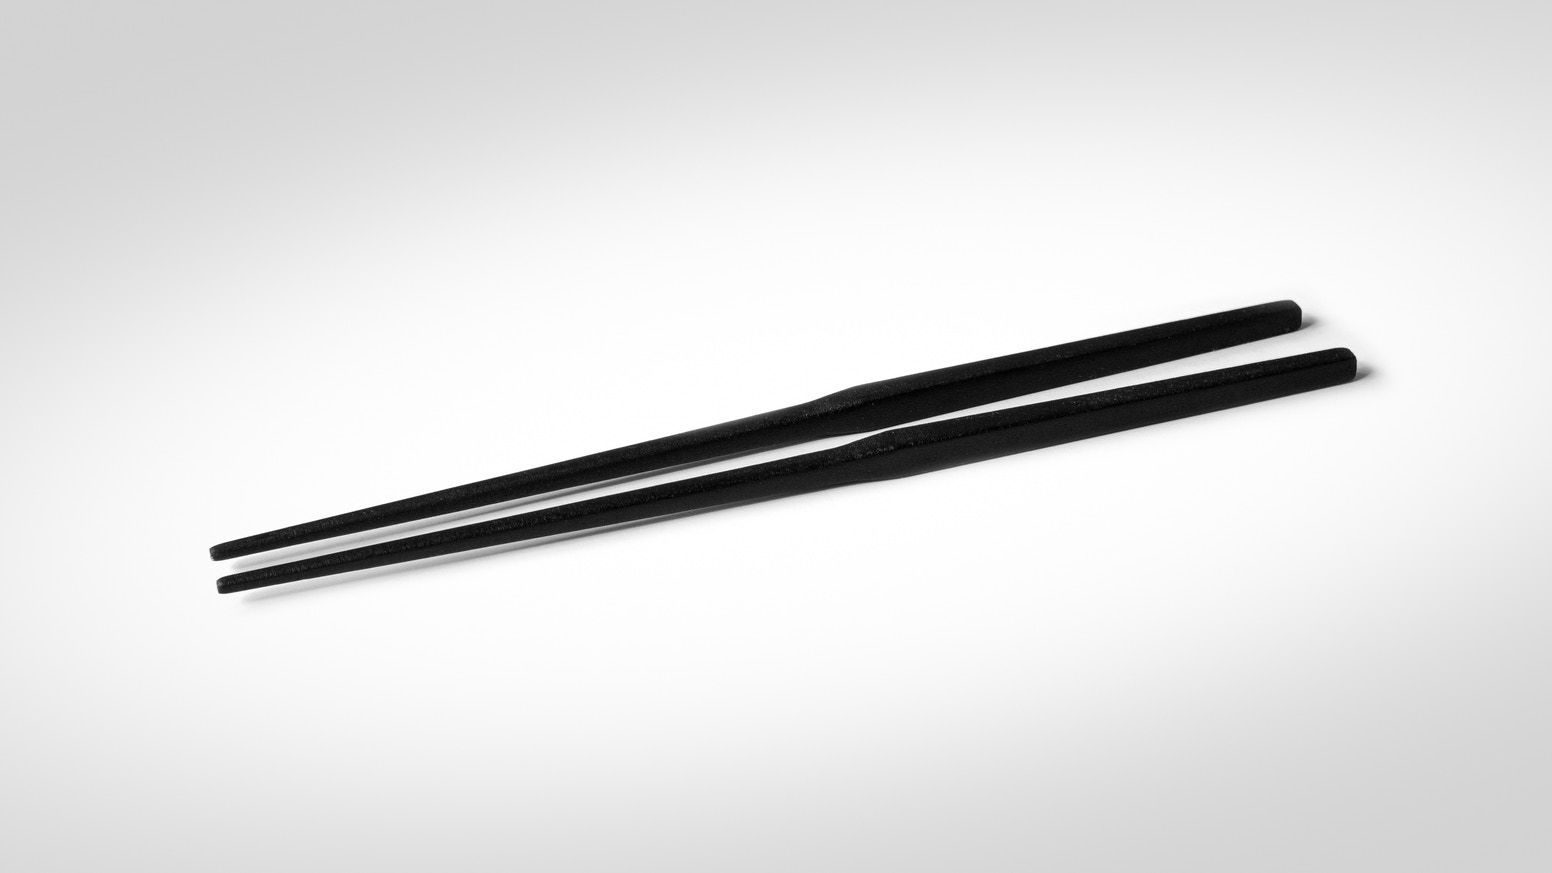 The world's most innovative chopsticks with levitating eating tips.